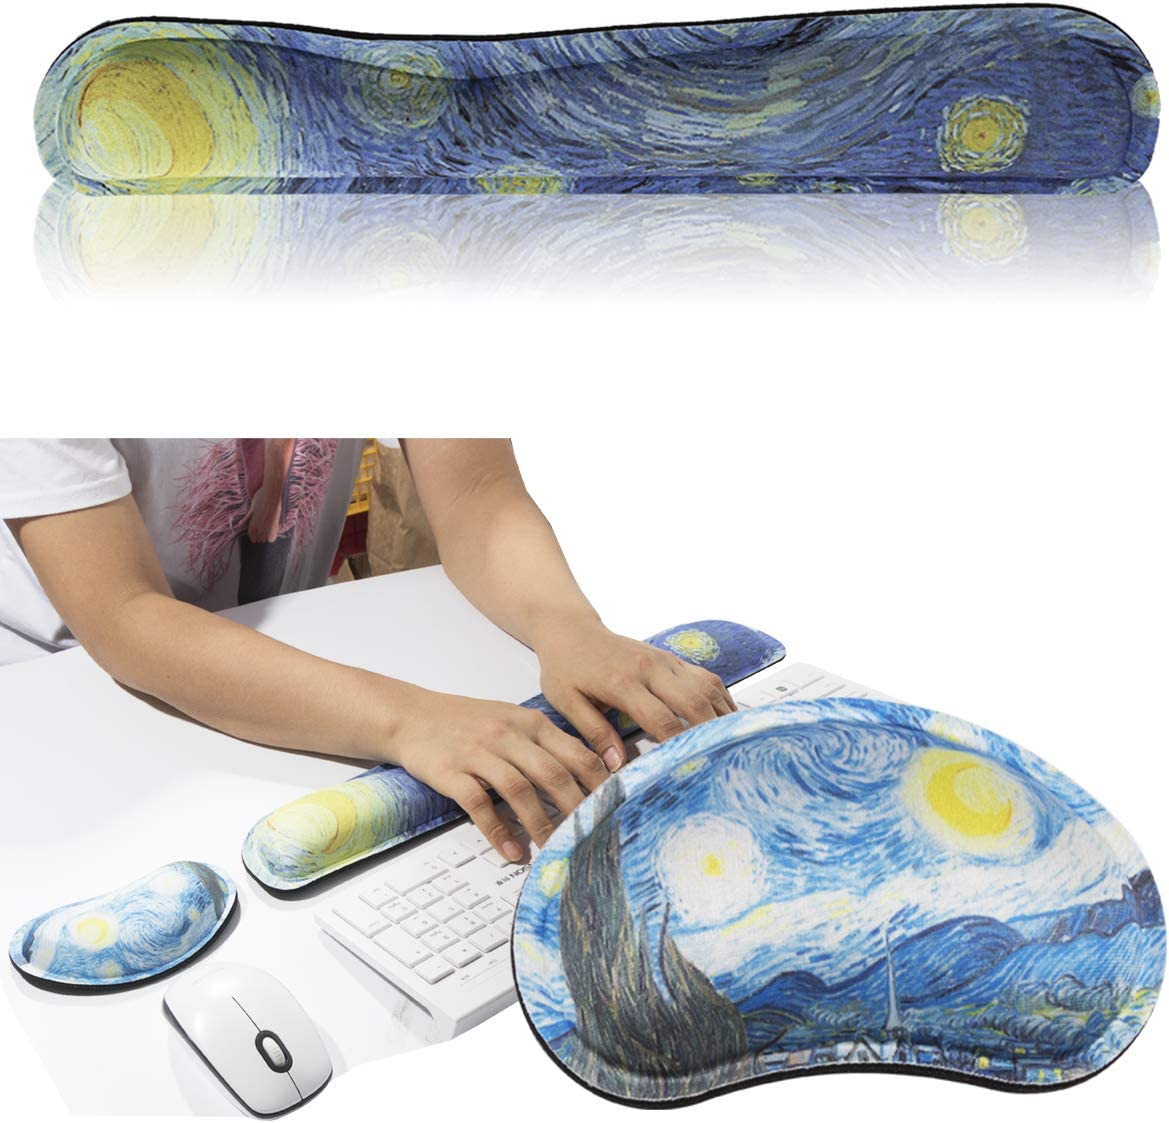 FF1 Memory Foam Mouse Pad Keyboard Wrist Rest Support - Ergonomic Support - for Office, Computer, Laptop - Premium Quality, Durable, Lightweight for Comfortably Typing Pain Relif and Repair